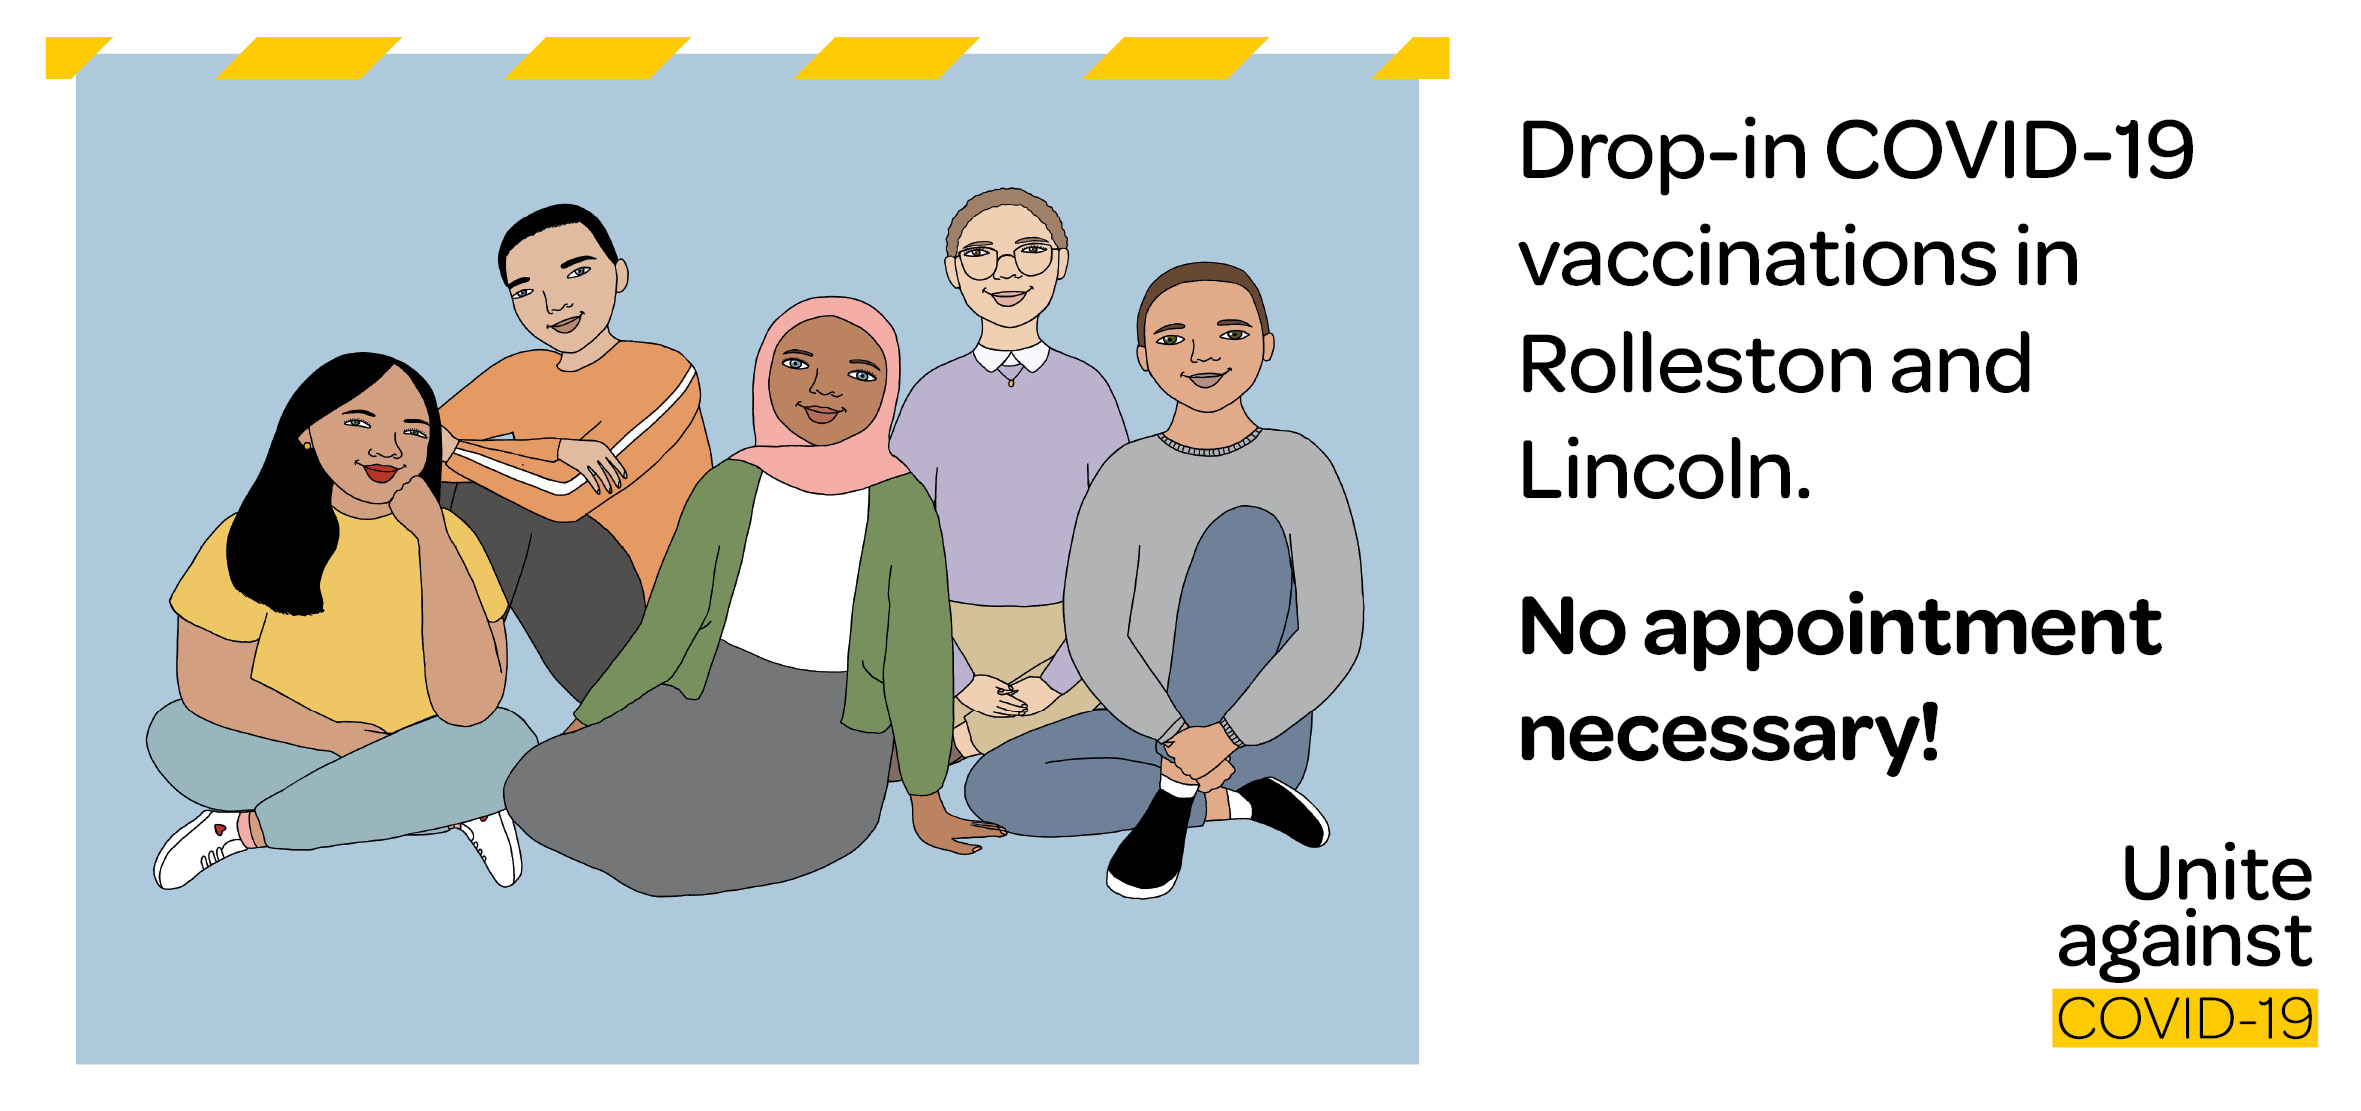 image for drop-in vaccination clinics